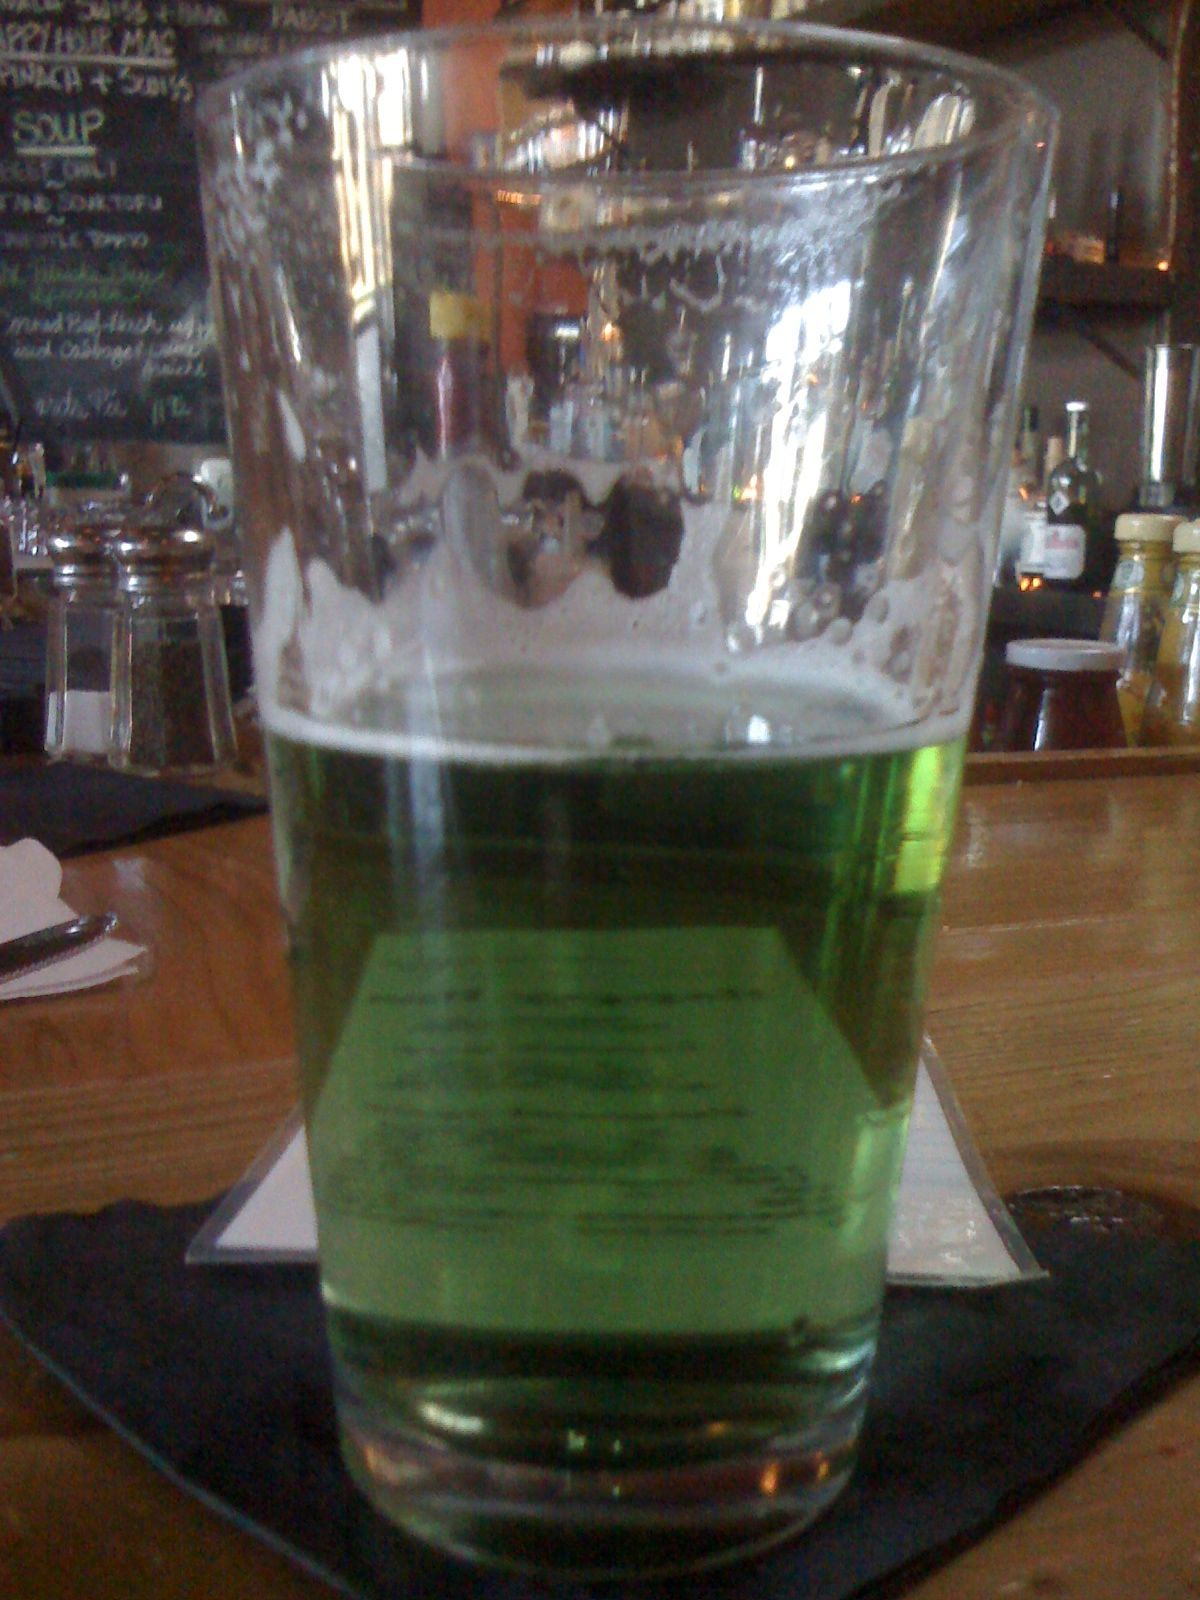 Only Half of the Green Beer Left   DrKnife iPhone Photo Blog